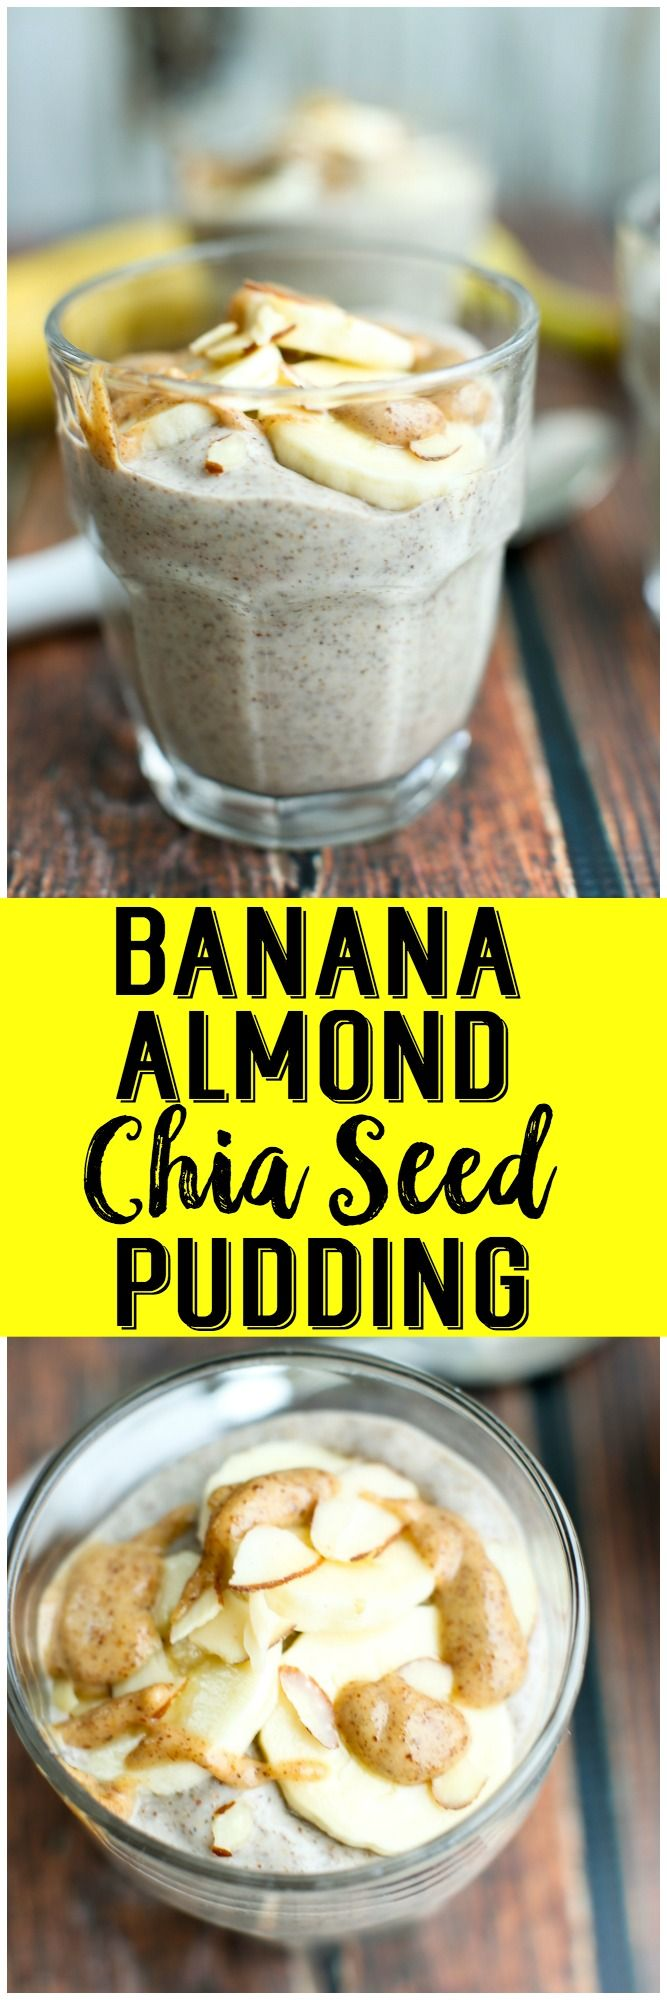 Creamy and vegan Banana Almond Chia Seed Pudding. Full of plant-based protein, this makes a healthy breakfast or snack! Gluten-free breakfast also